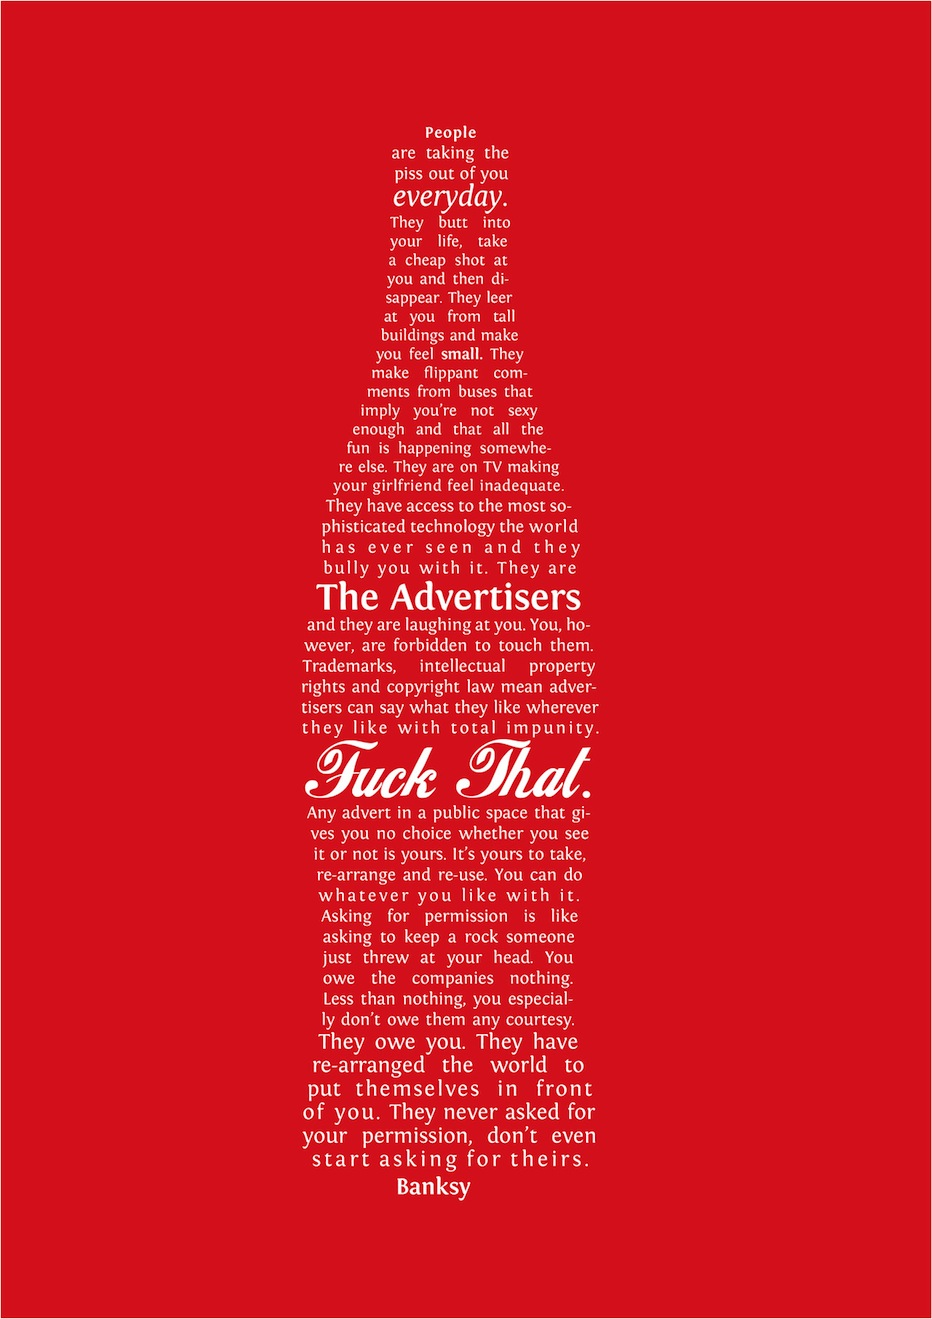 Coca Cola Quotes Custom Typographic Antiad Forms 'banksy's Quote' Into The Shape Of A